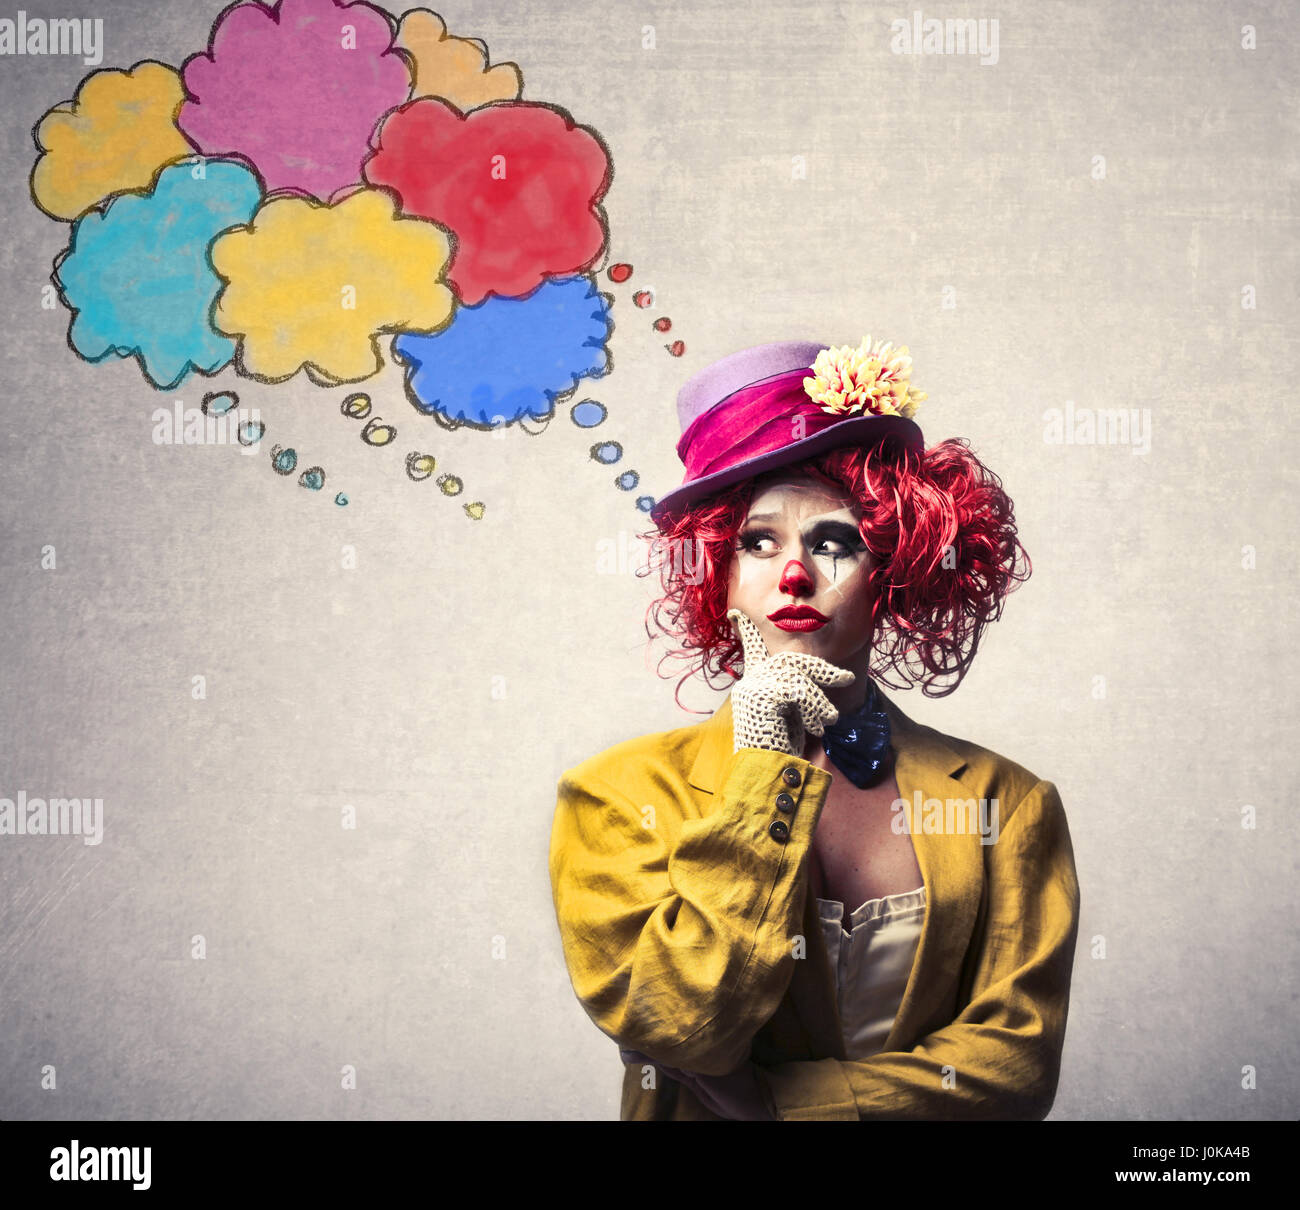 Clown woman thinking - Stock Image